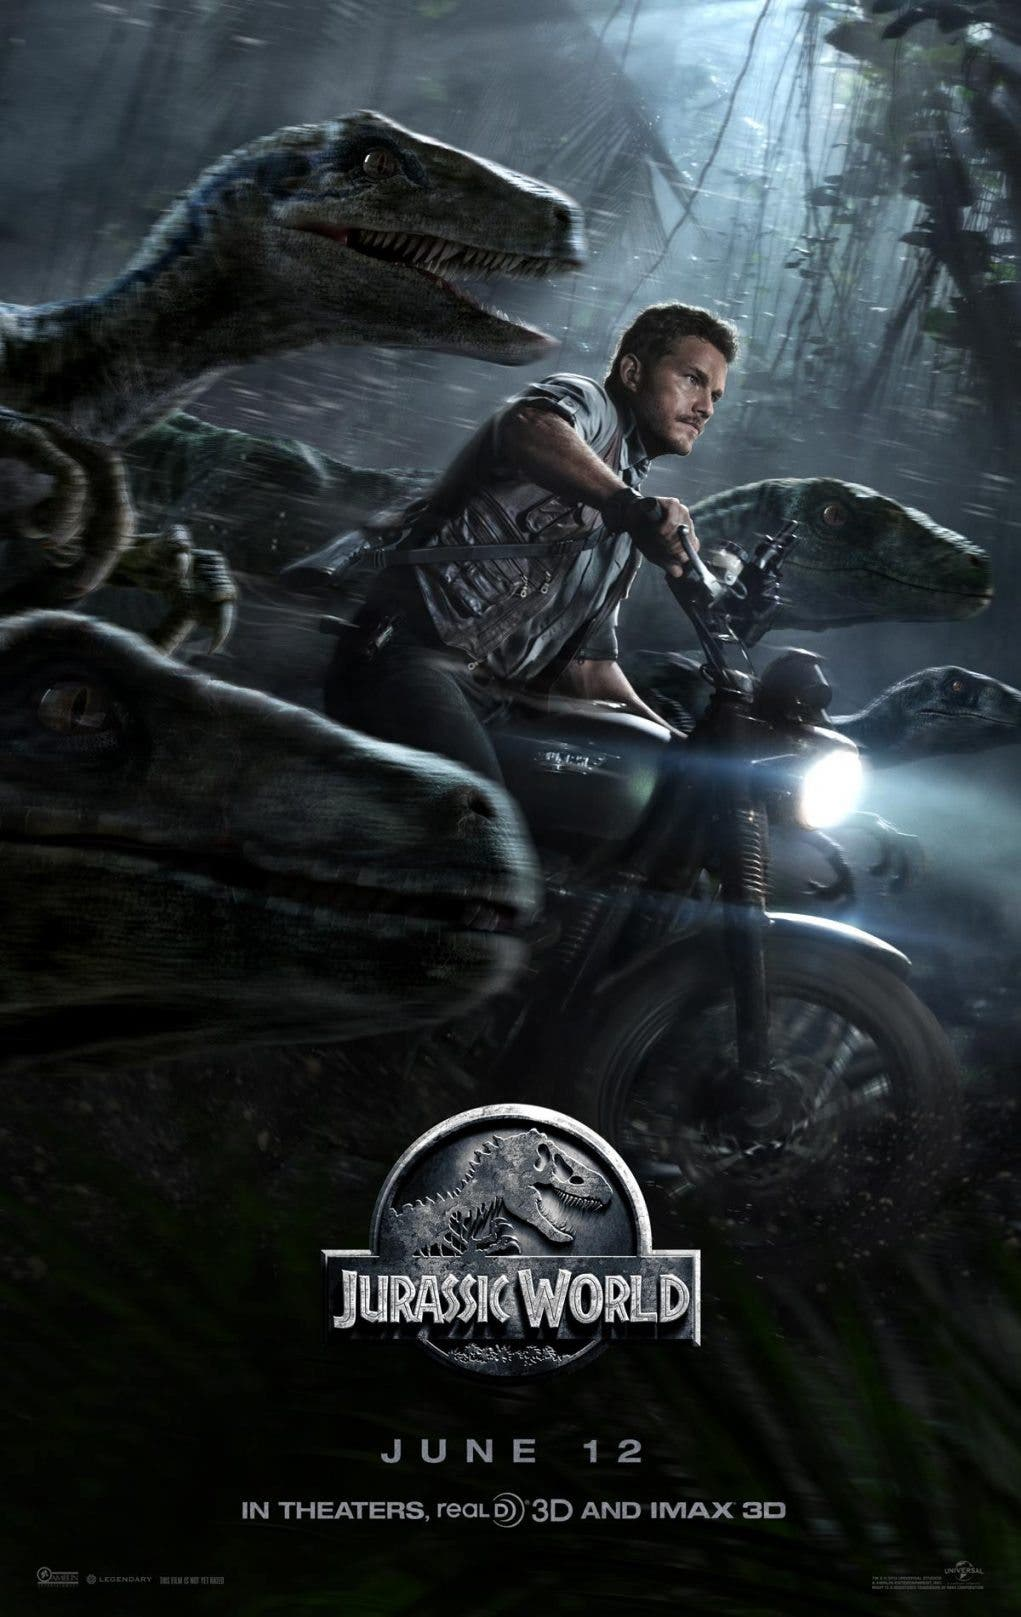 Chris Pratt Jurasicc World